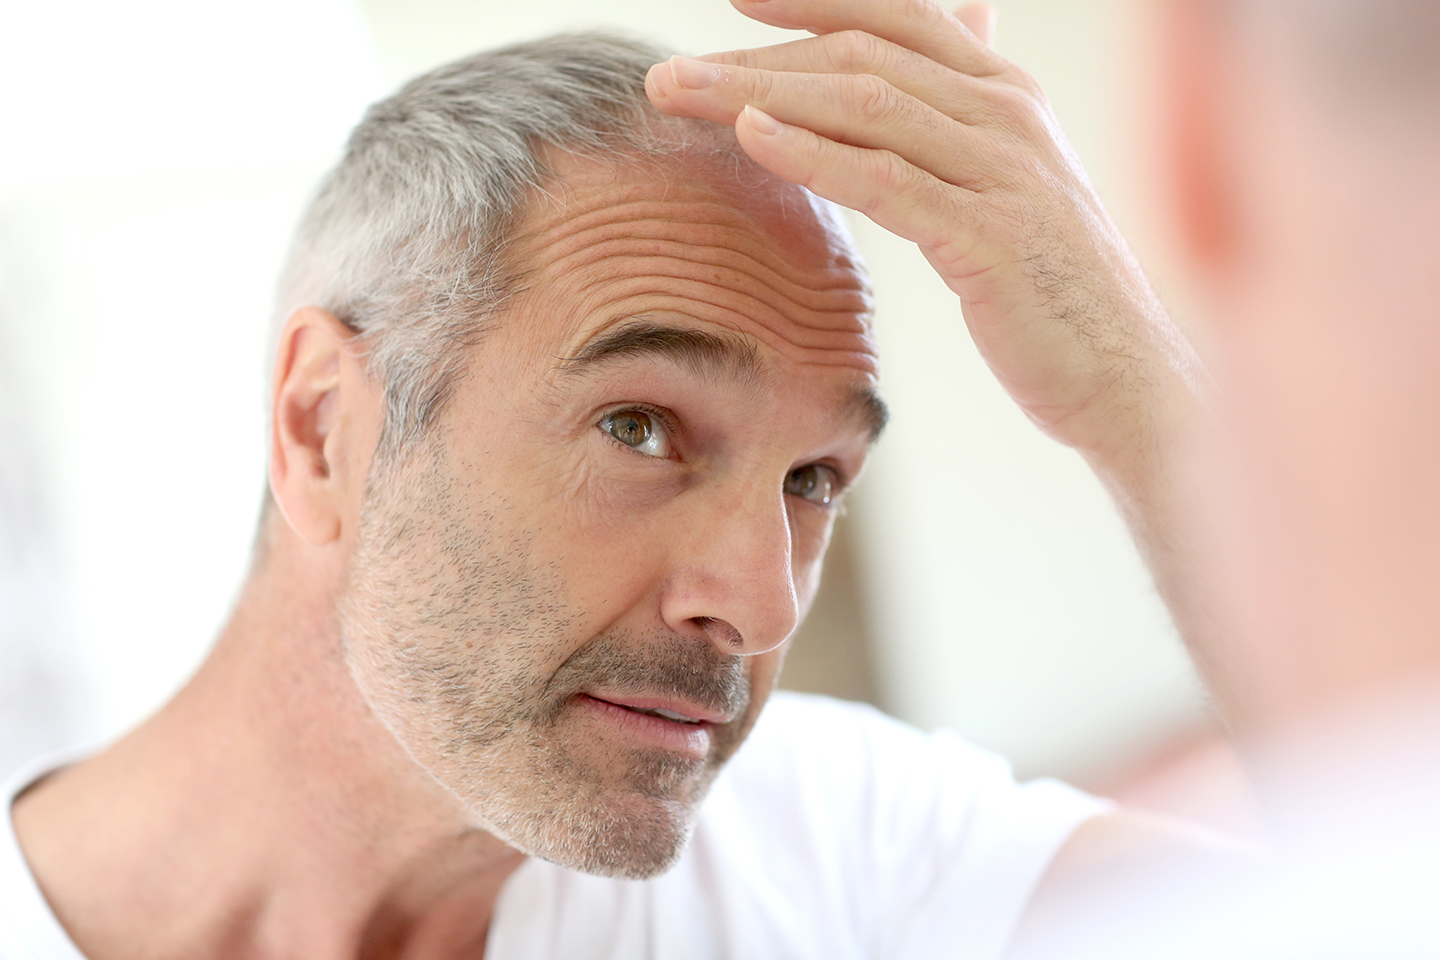 Trauma and Hair Loss